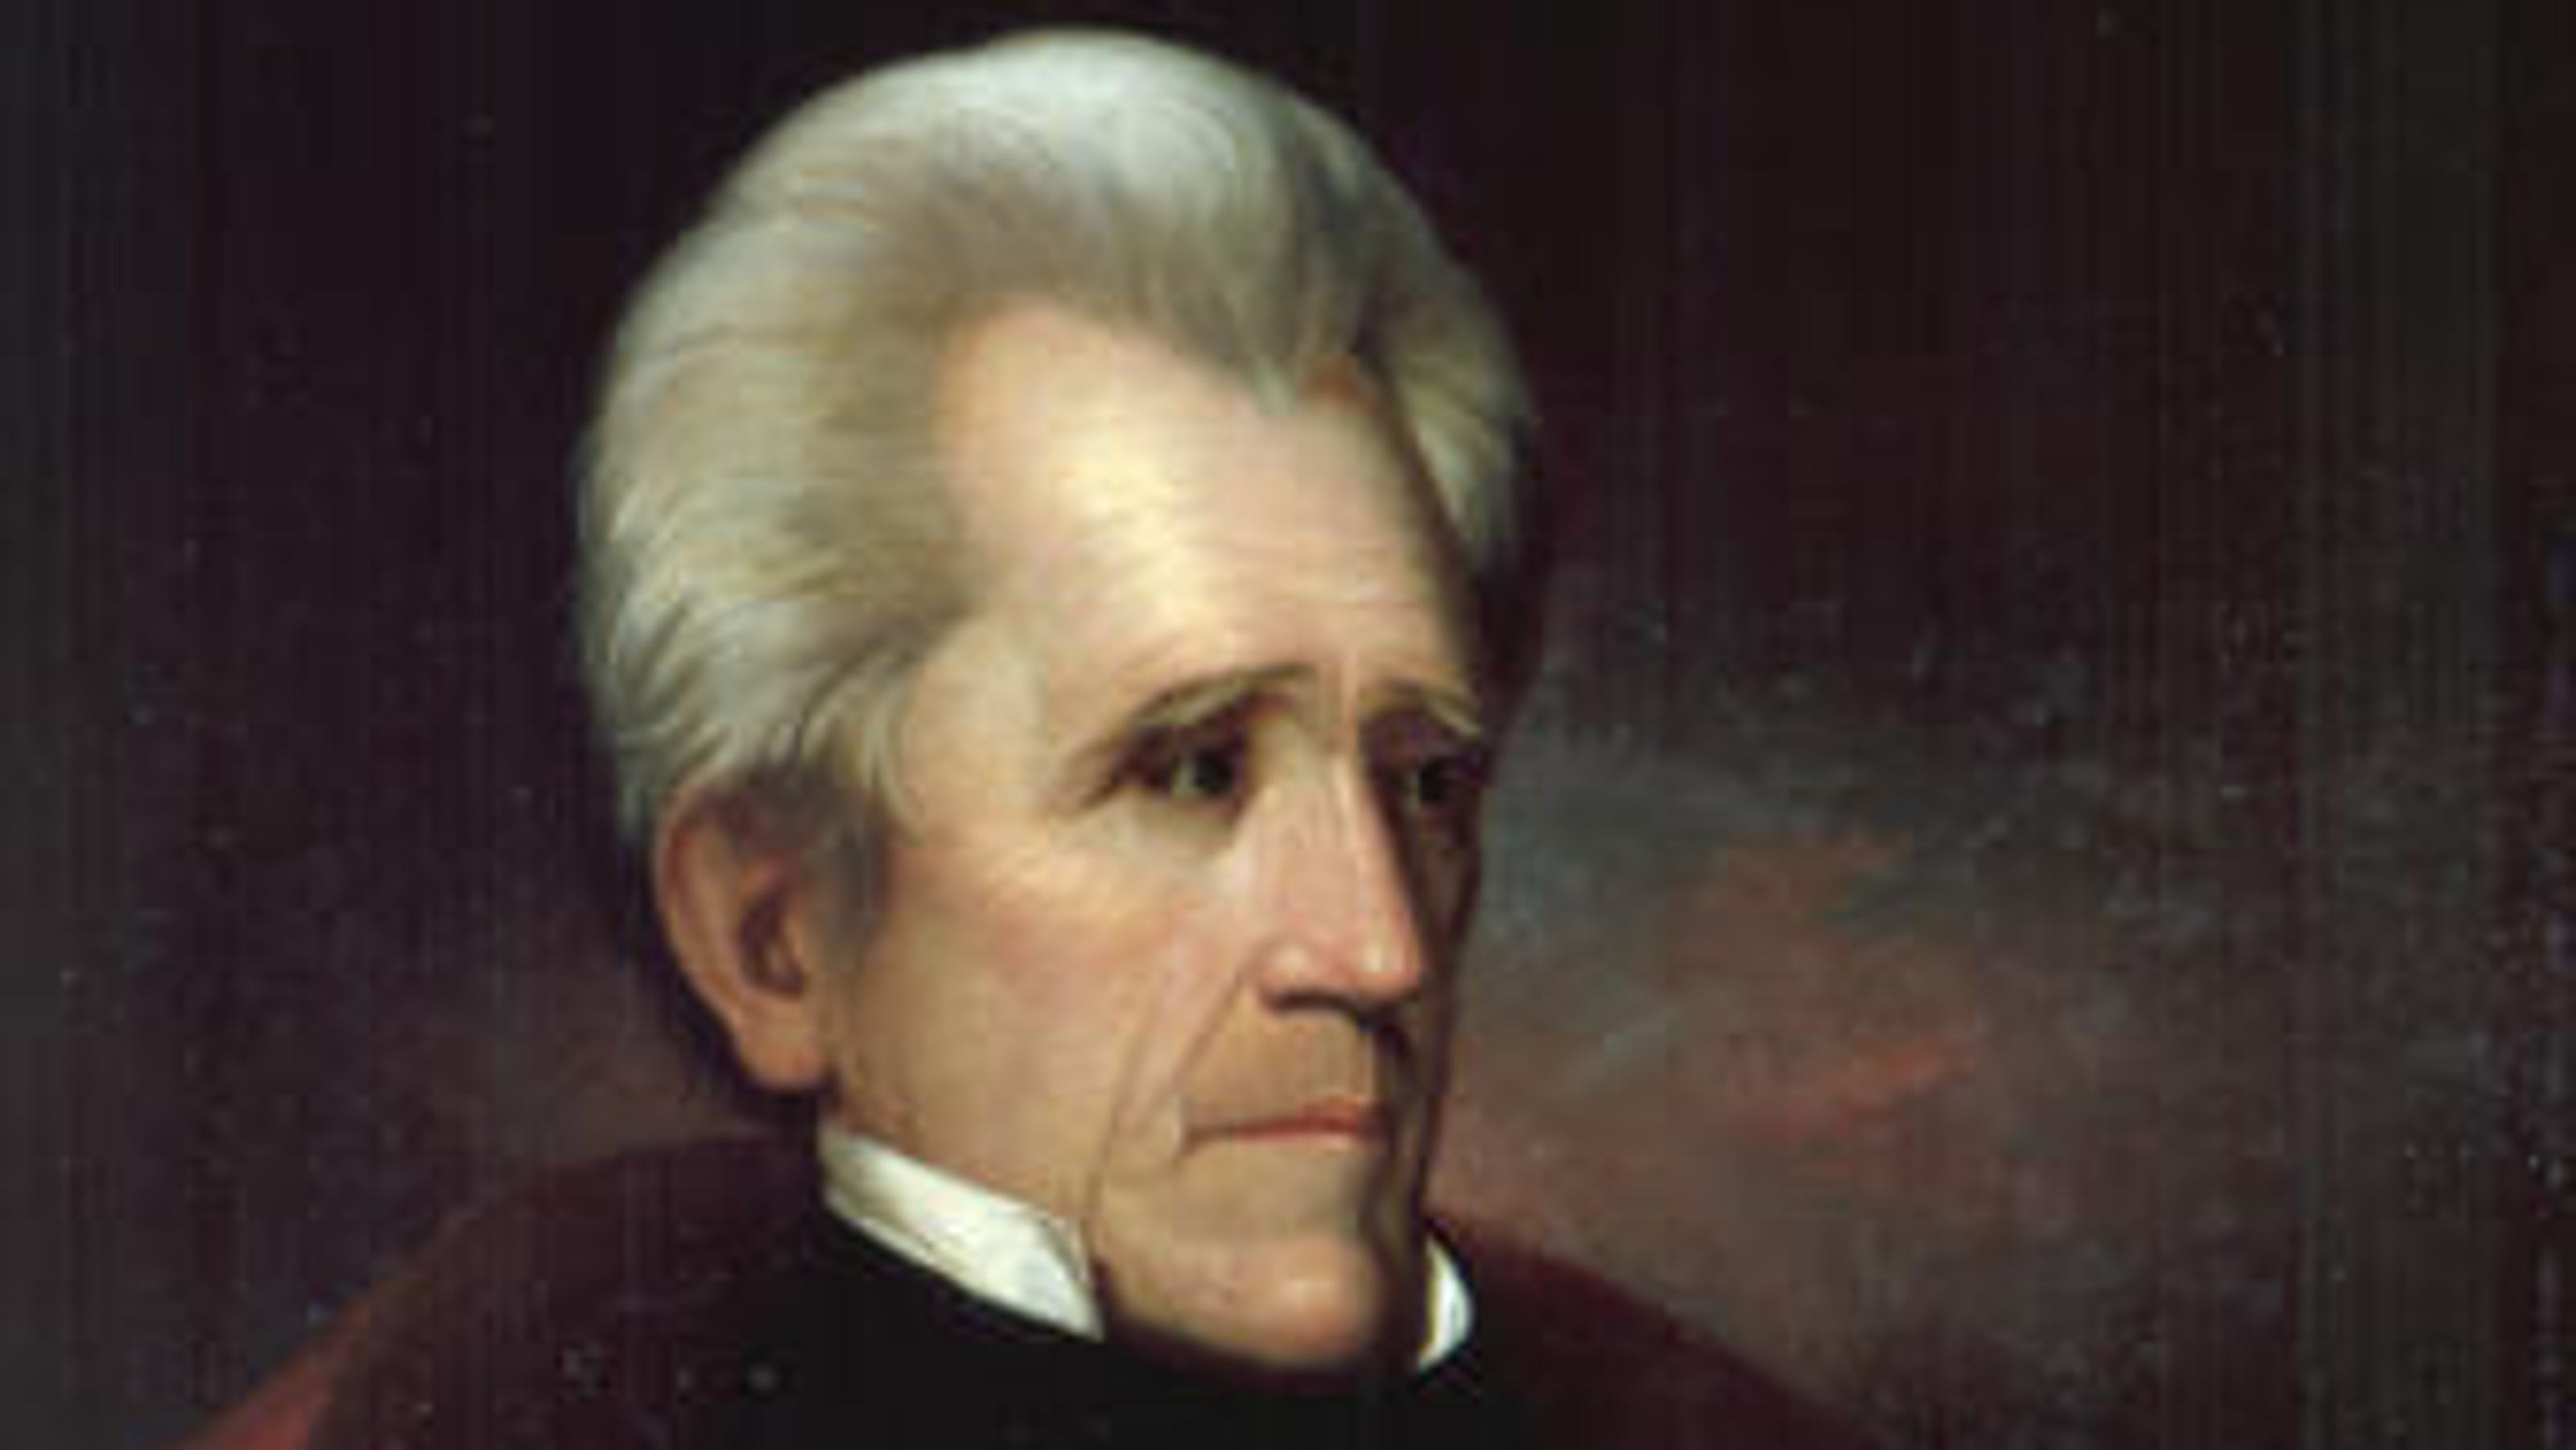 andrew jackson 1 $1 presidential dollars are struck in brass, not gold, and are only worth their face value of $1.